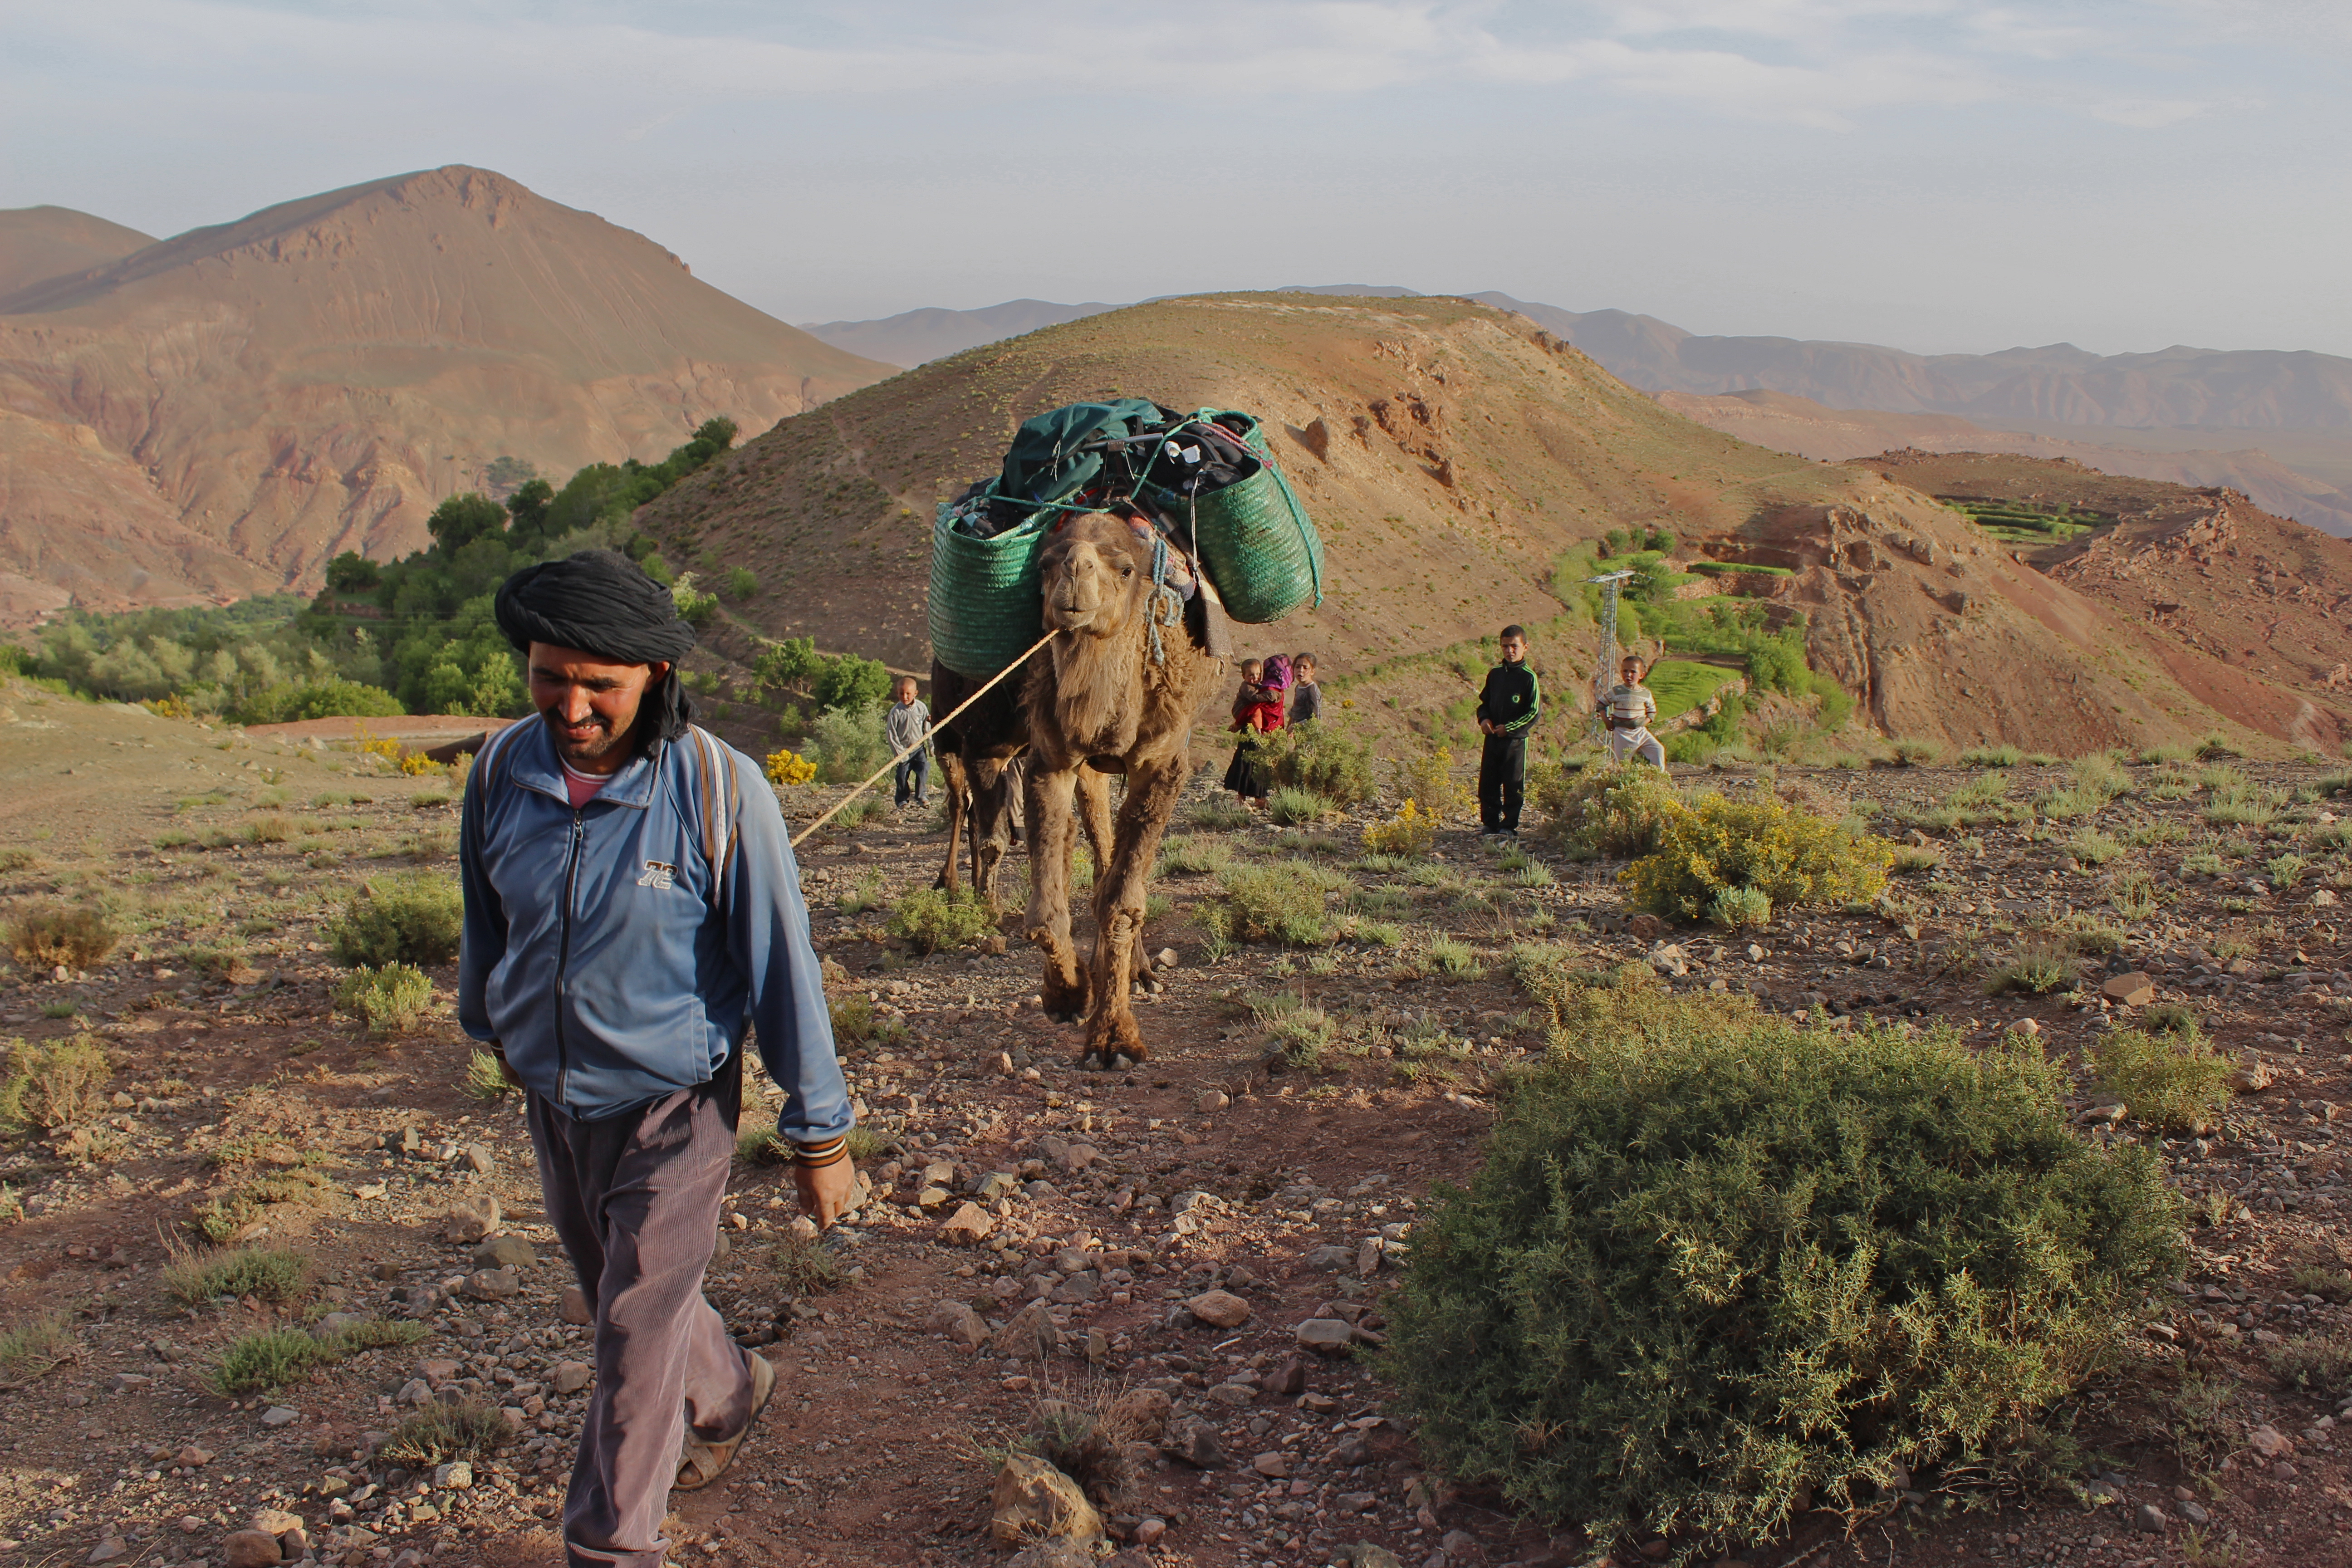 Brahim leads the camels out of the Valley of Roses, and into the M'goun massif, High Atlas mountains, Morocco